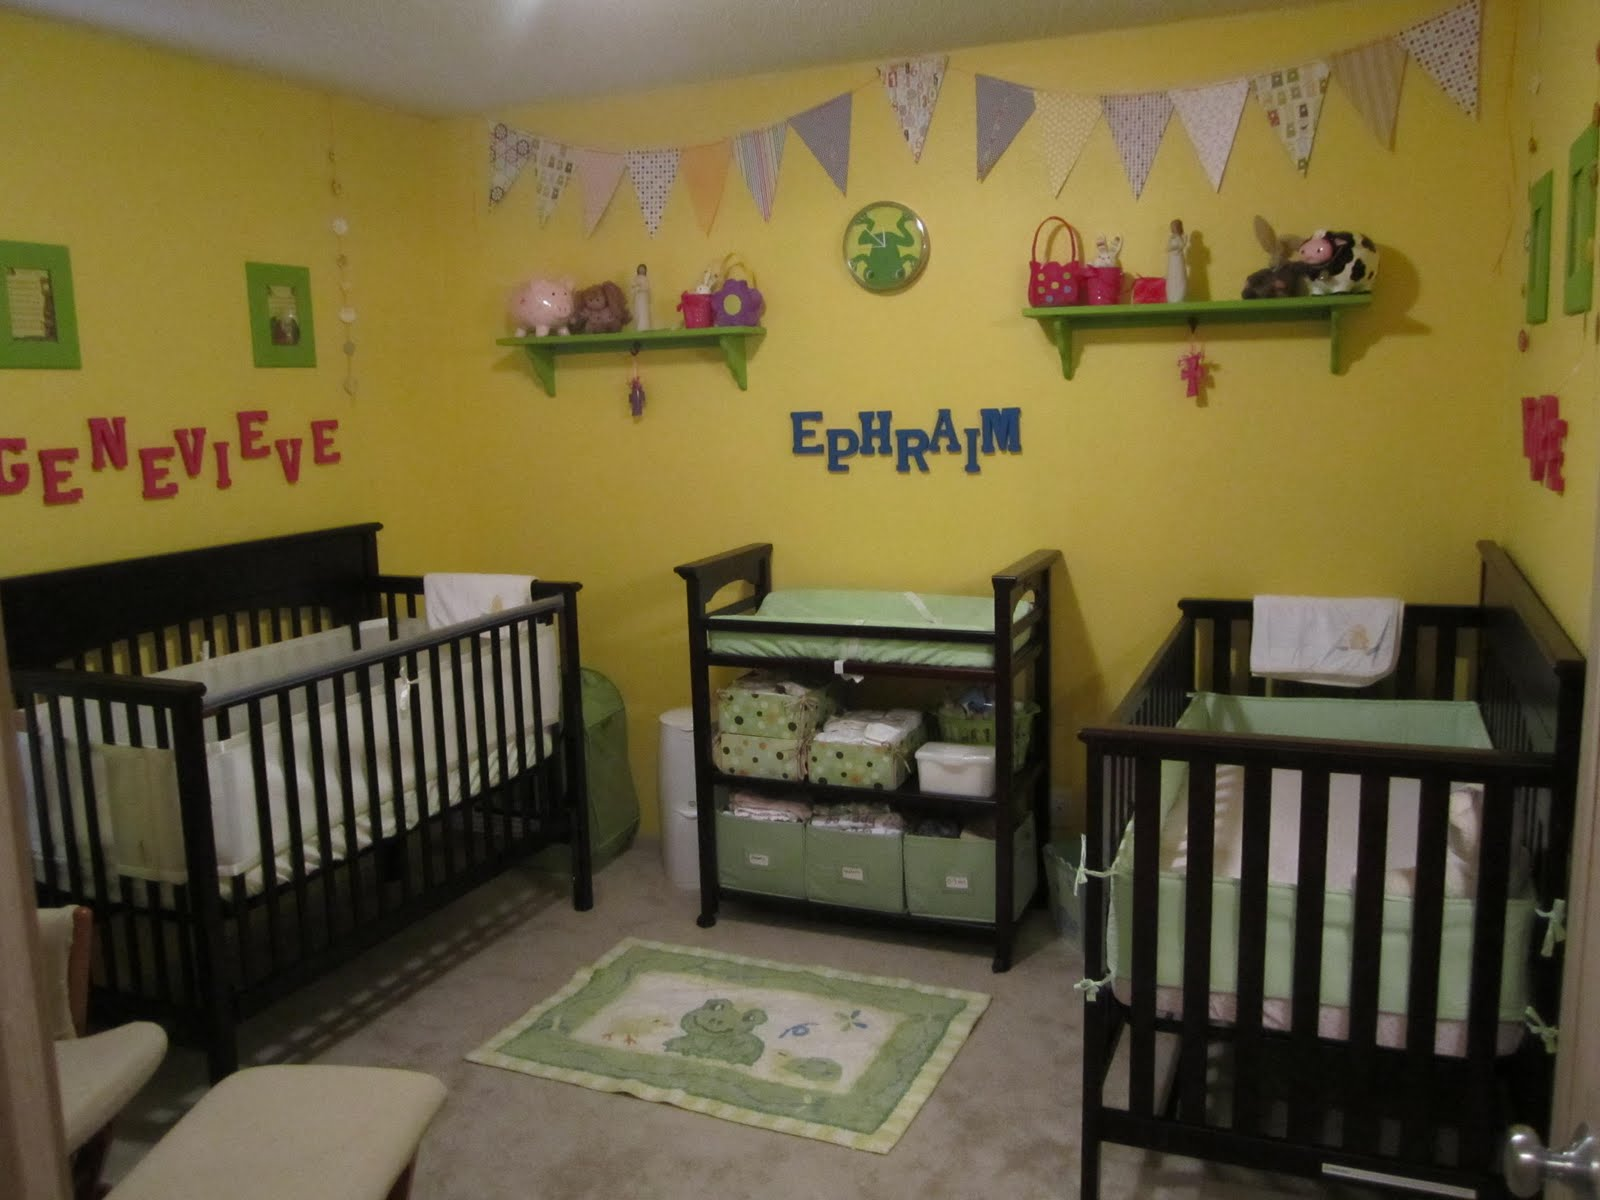 Crib for triplet babies - We Have The Two Cribs Put Up Although I Figure They Will Sleep In The Same One For Awhile We Put Ephraim S Name On The Wall